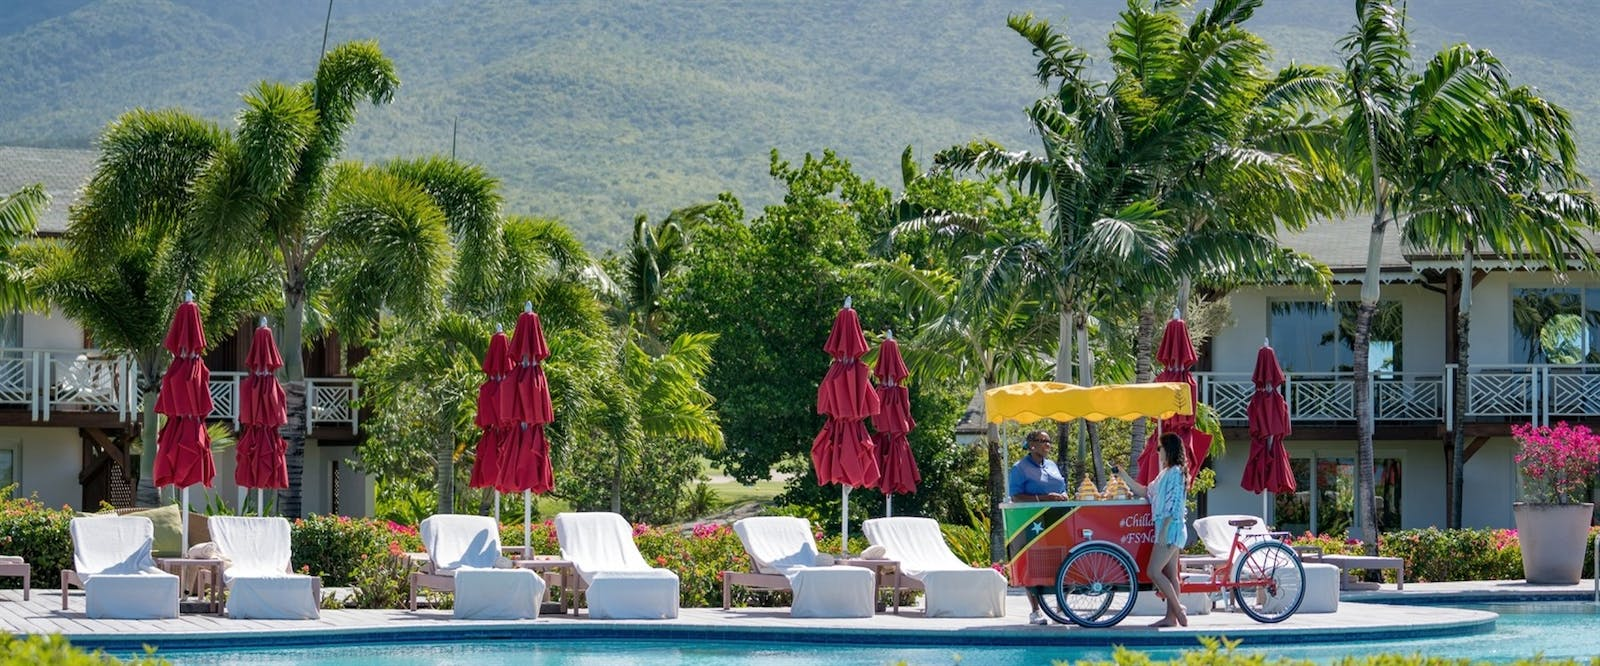 The Pool and loungers at Four Seasons Resort Nevis